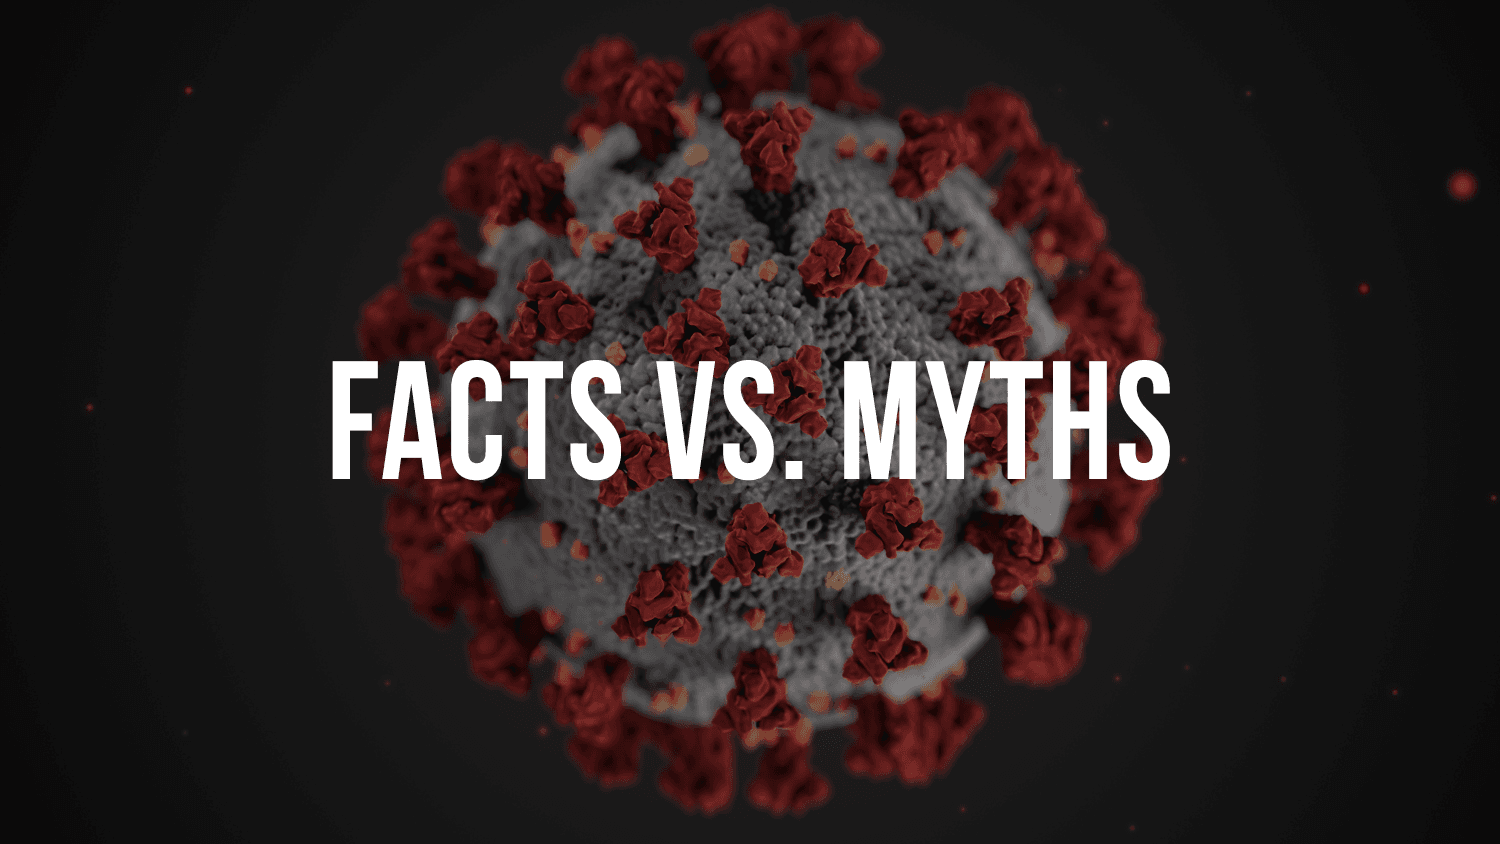 Facts vs Myths Graphic with Coronvirus in background